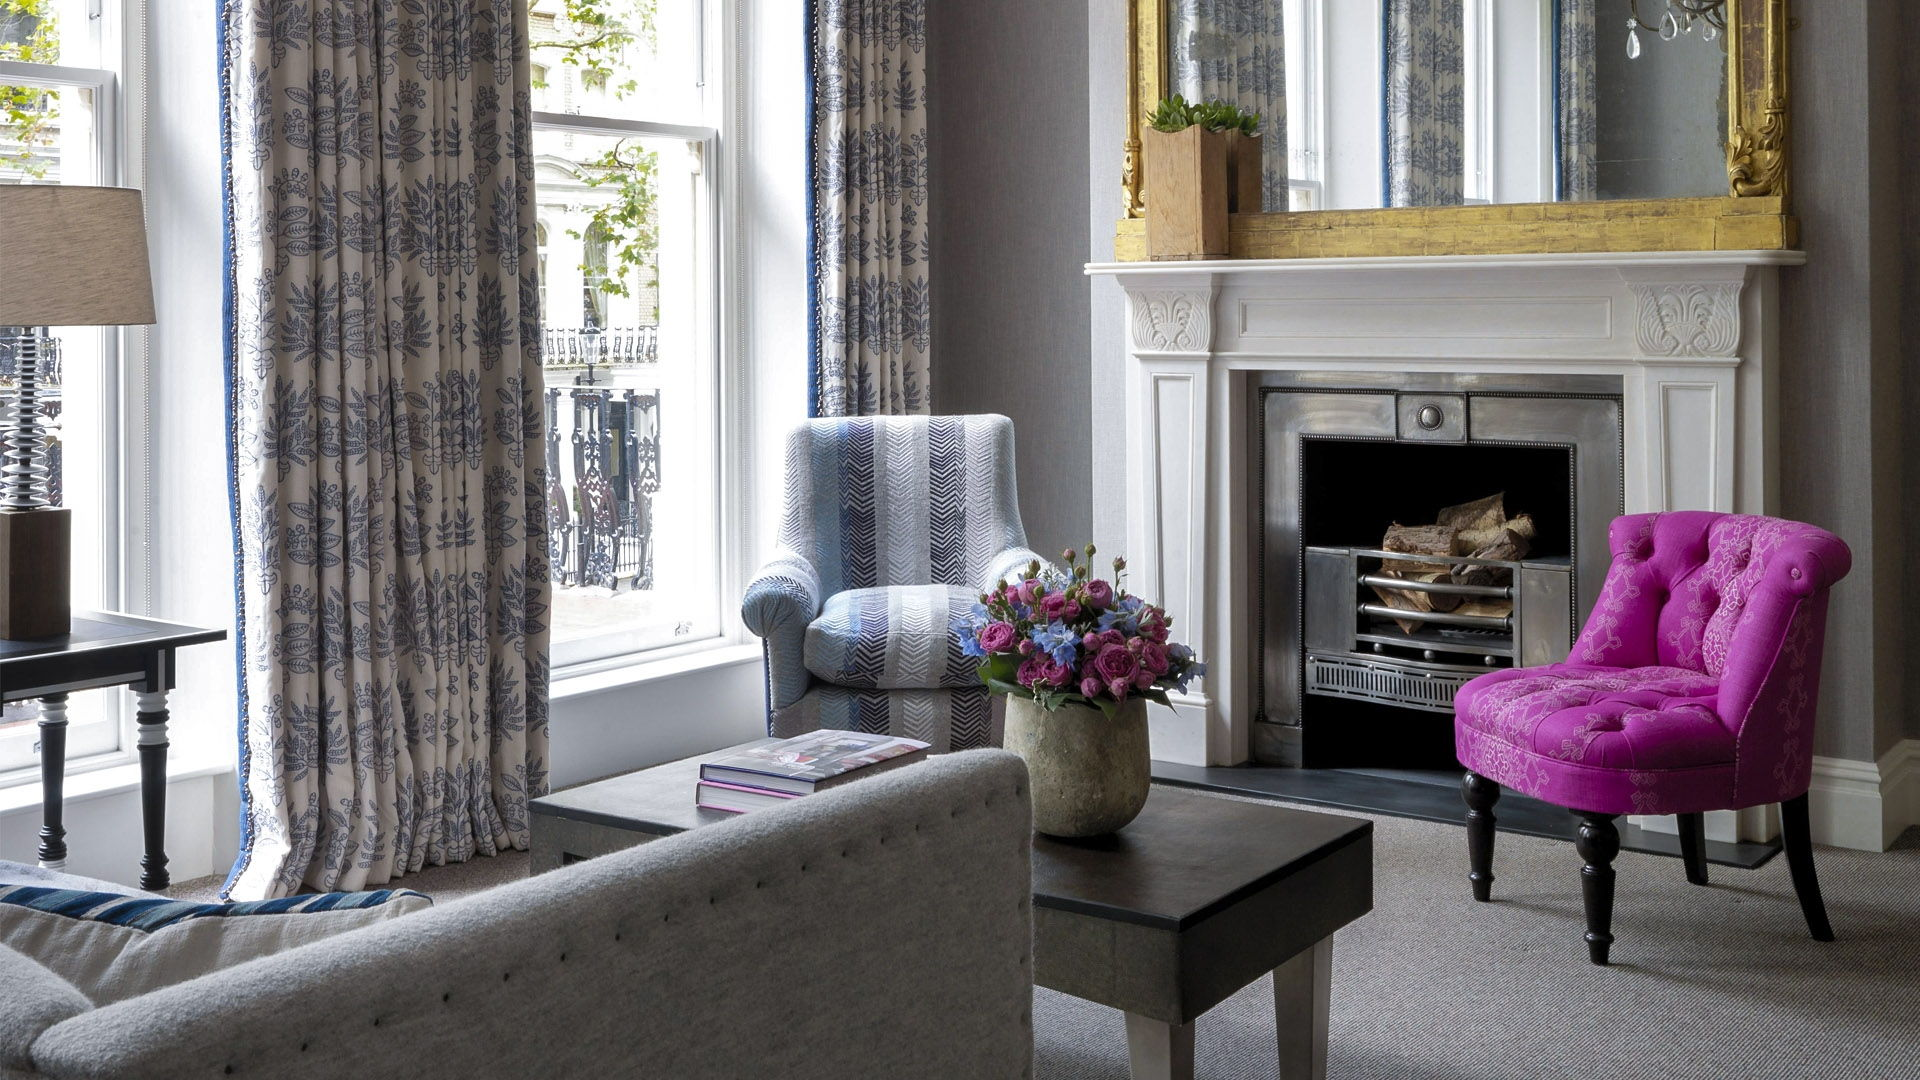 Luxury Family Friendly Central London Hotel With British